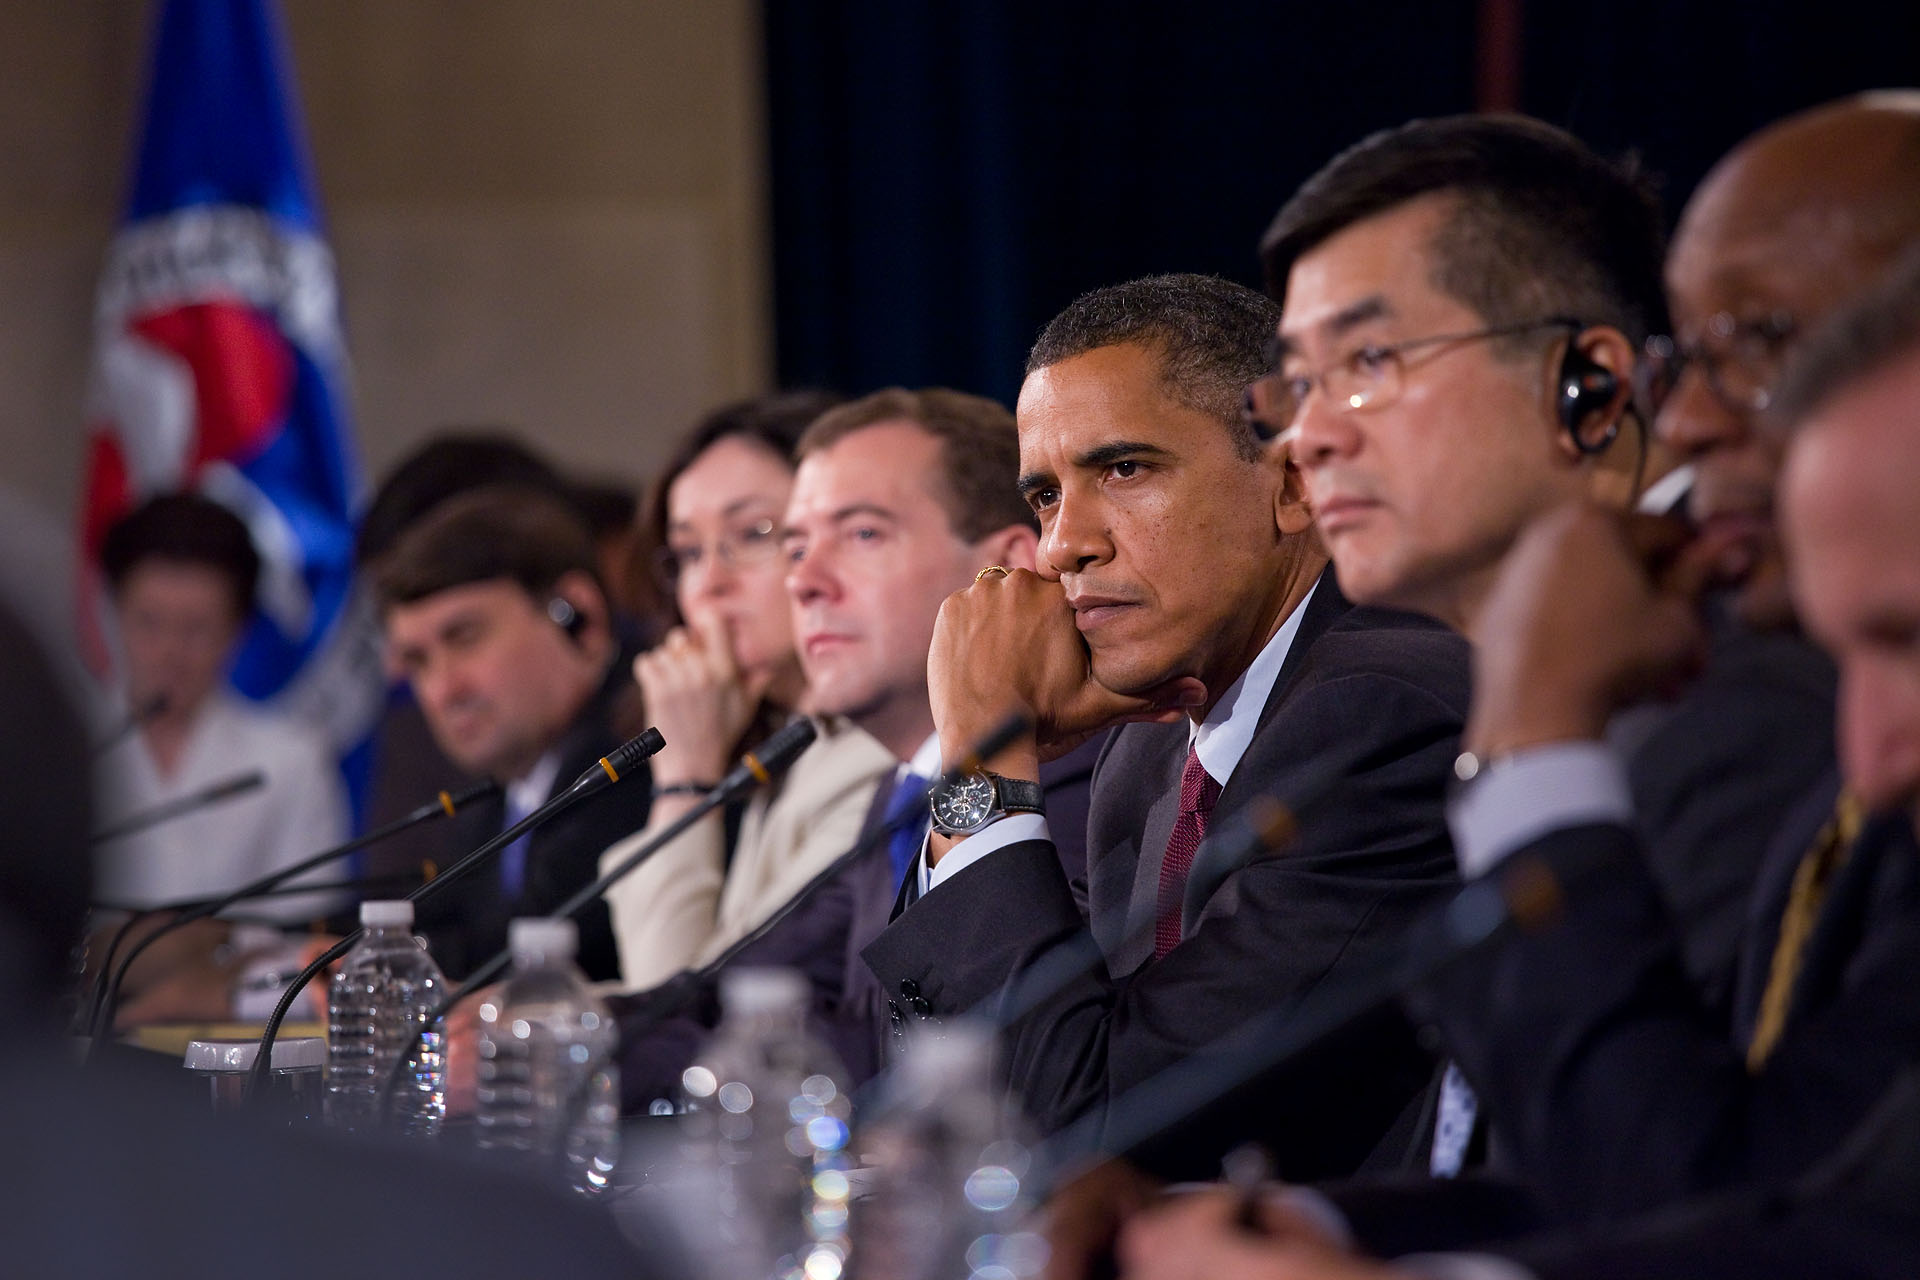 President Barack Obama and President Dmitry Medvedev of Russia at the U.S.–Russia Business Summit